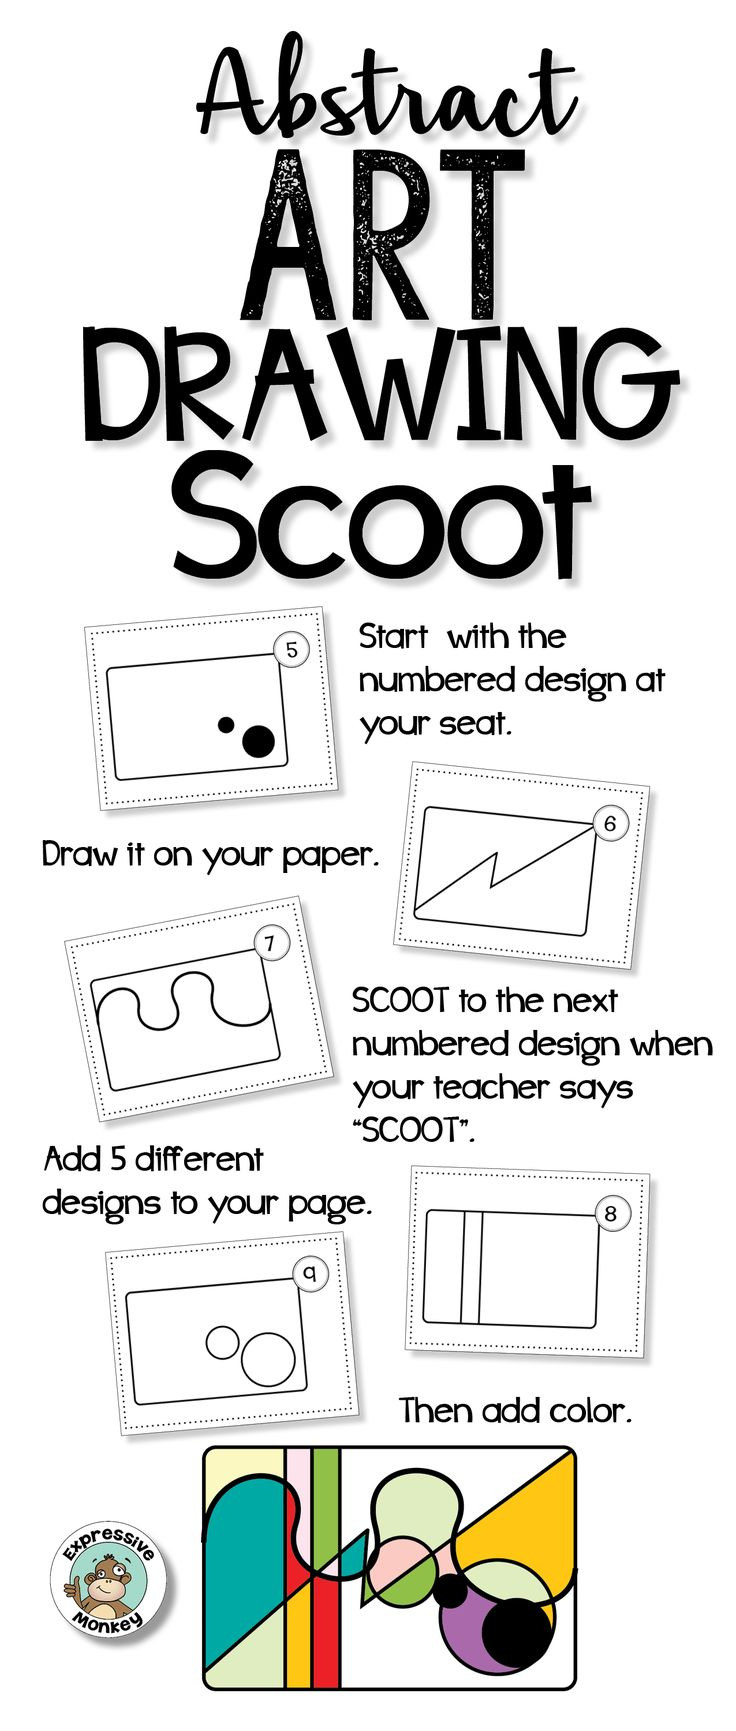 This fun game is a great way to get students drawing abstract designs.